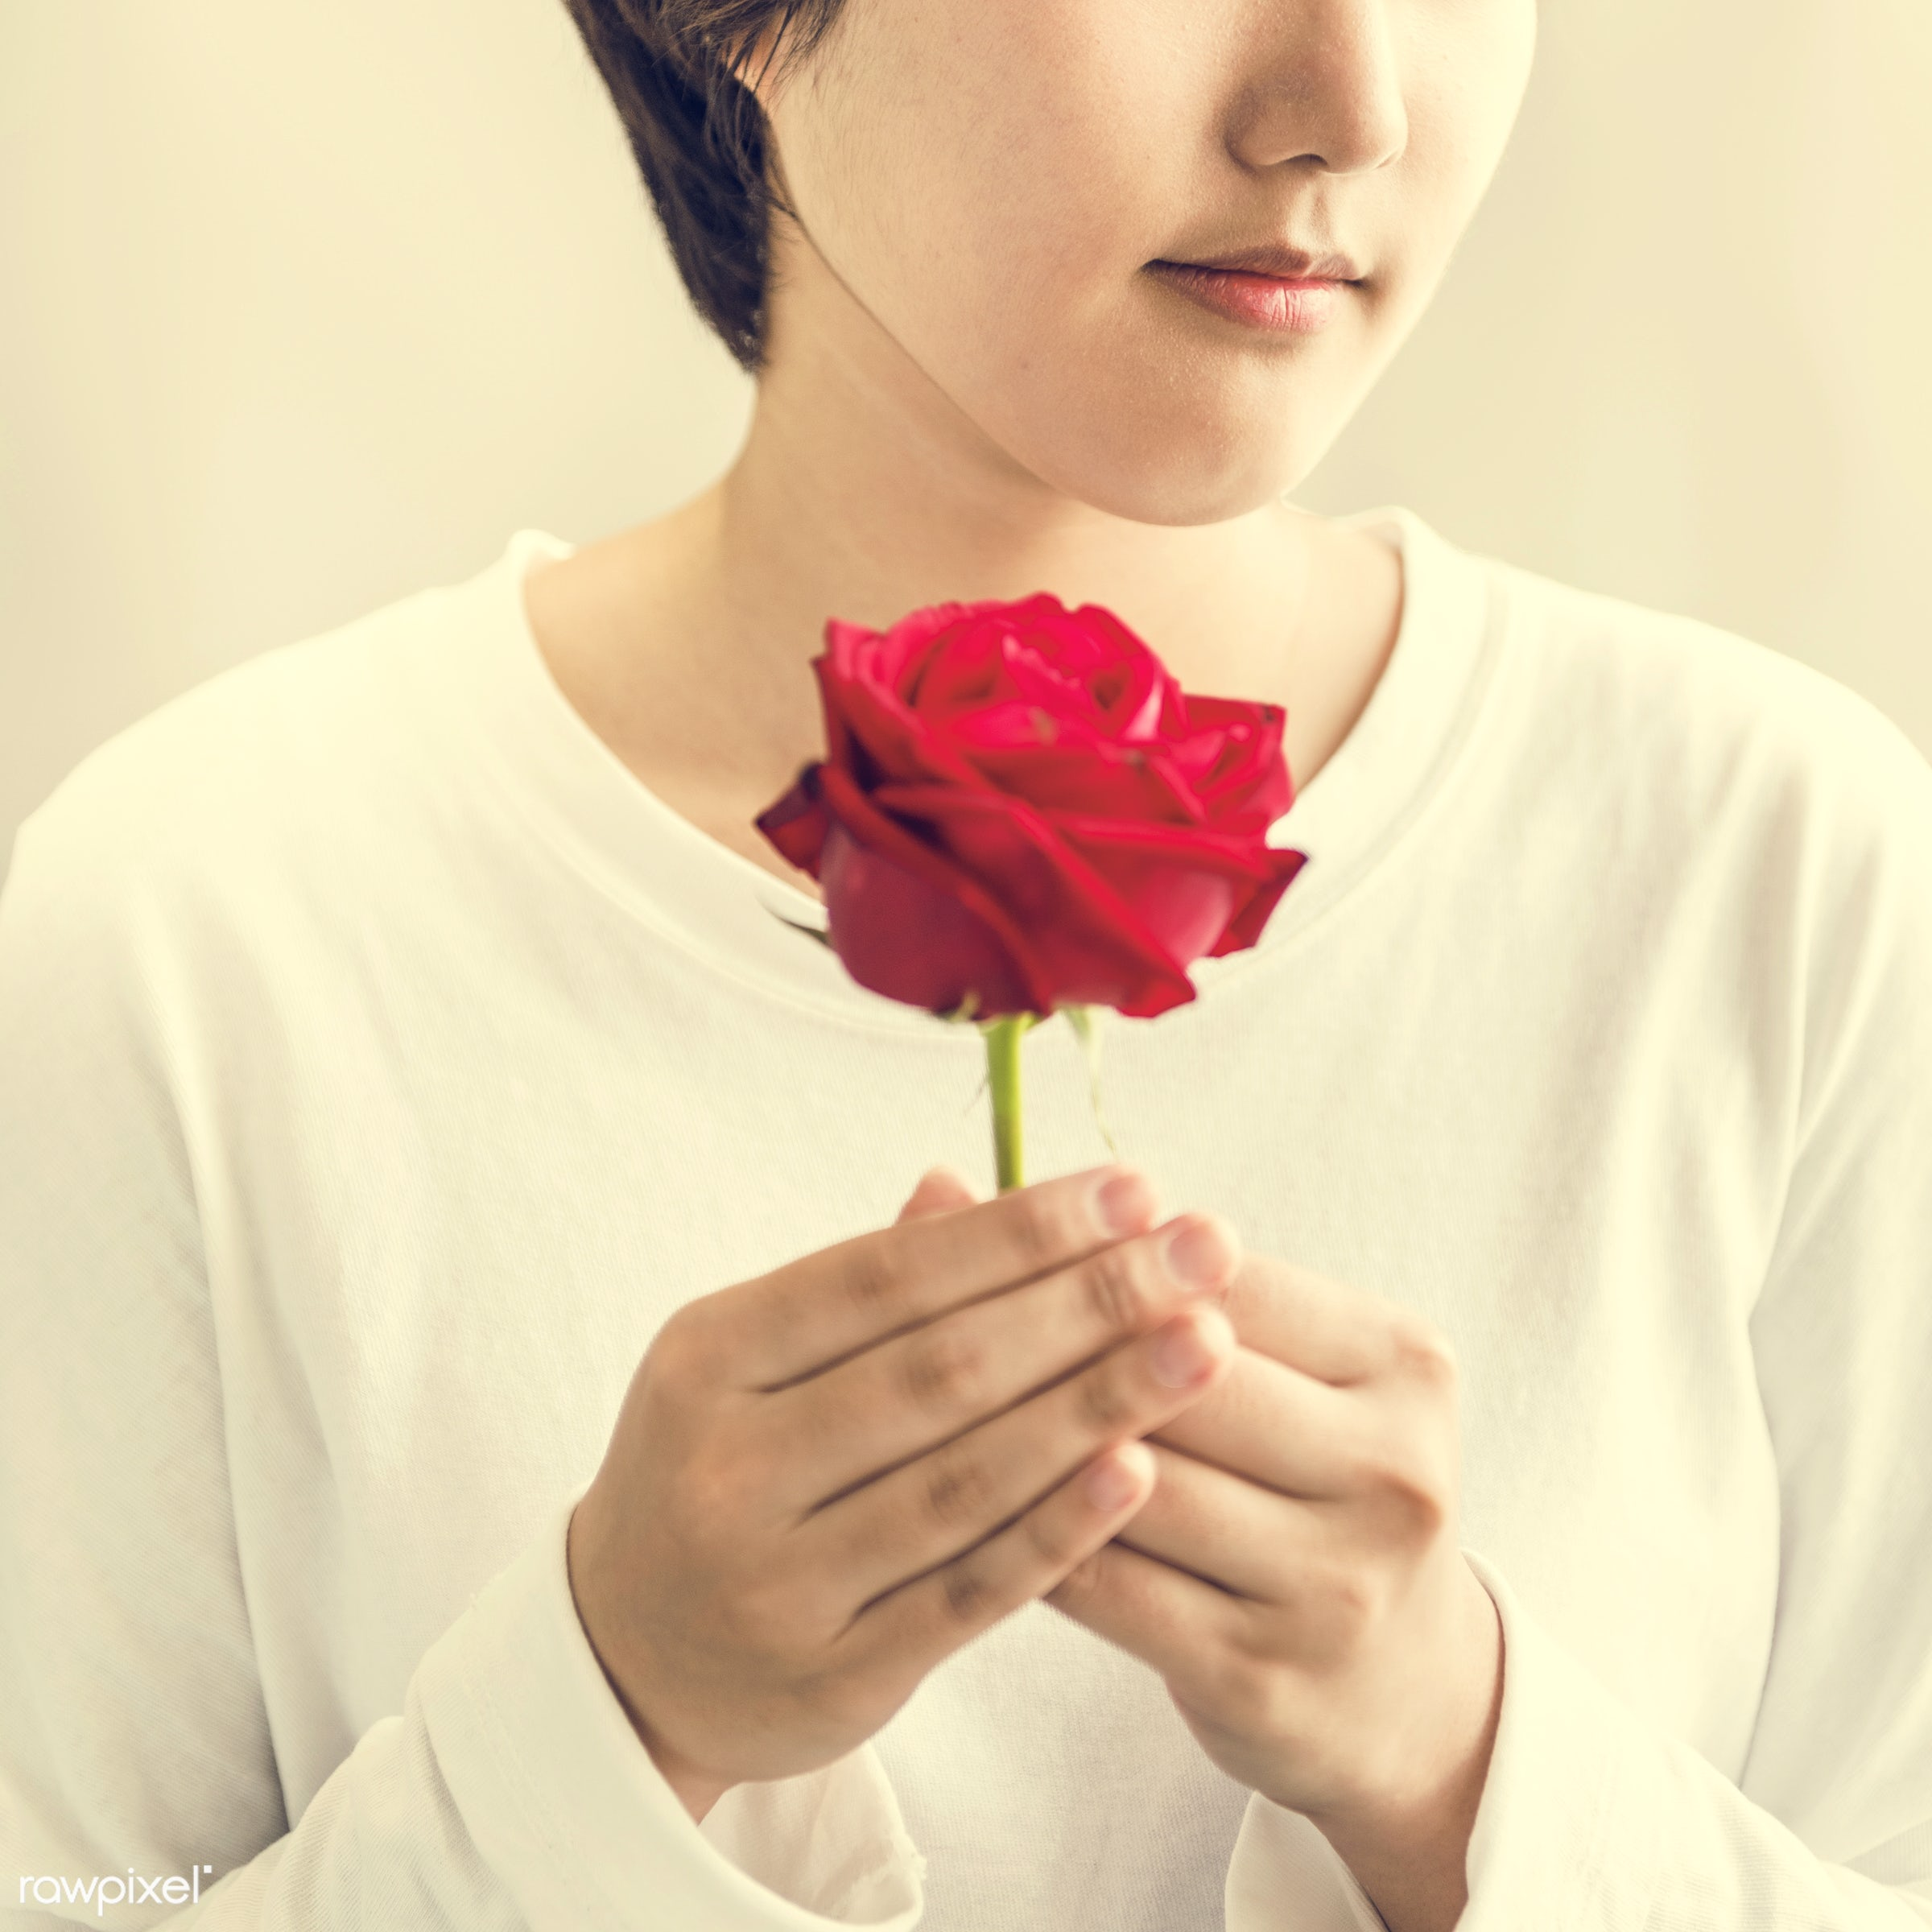 alone, asian, asian ethnicity, beautiful, blossom, calm, casual, cheerful, chilling, dating, enjoyment, flora, floral,...